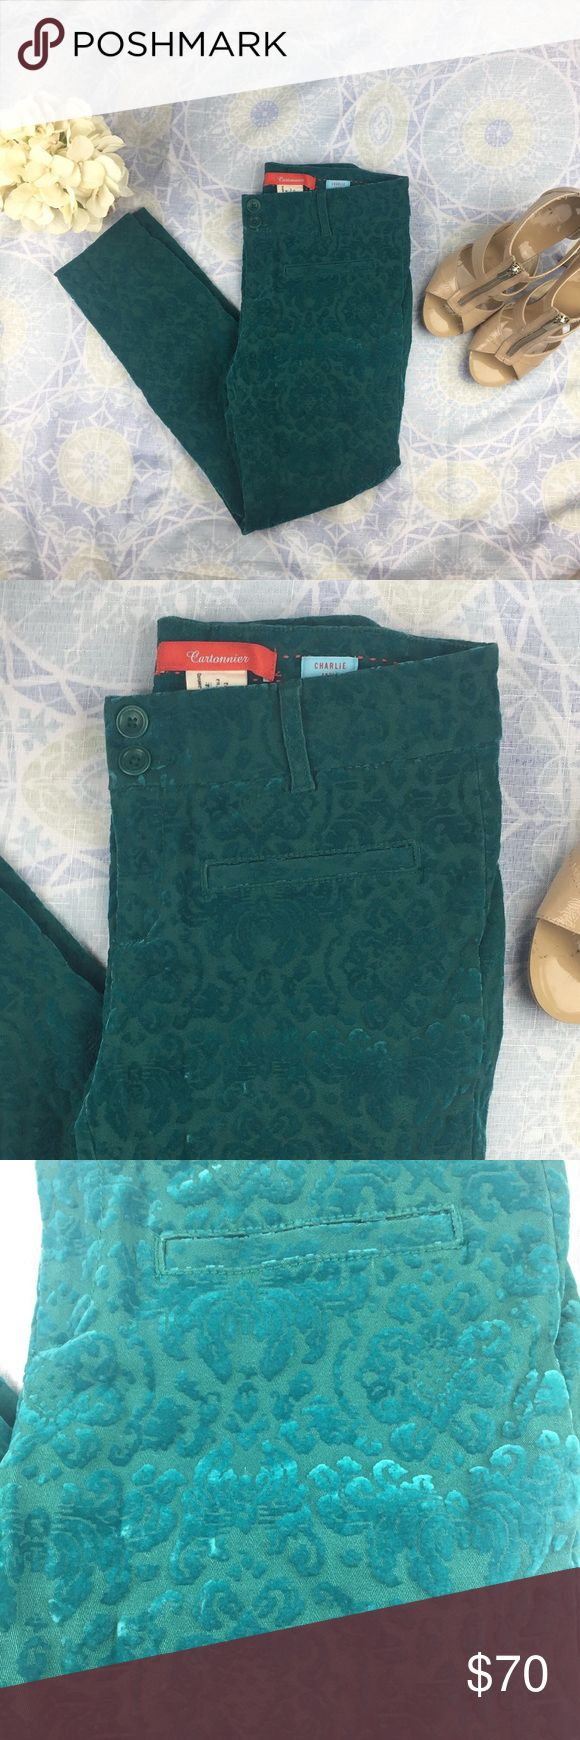 "Anthropologie Cartonnier Charlie Ankle Pant Excellent used condition.  Beautiful teal green with velvet brocade pattern texture.  The velvet has an eye catching sheen.  Double button and zipper closure.  Slit pockets on front and back.  98% cotton, 2% spandex.  Measurements: 26"" in seam, 29"" waist, 32"" hips Anthropologie Pants Ankle & Cropped"